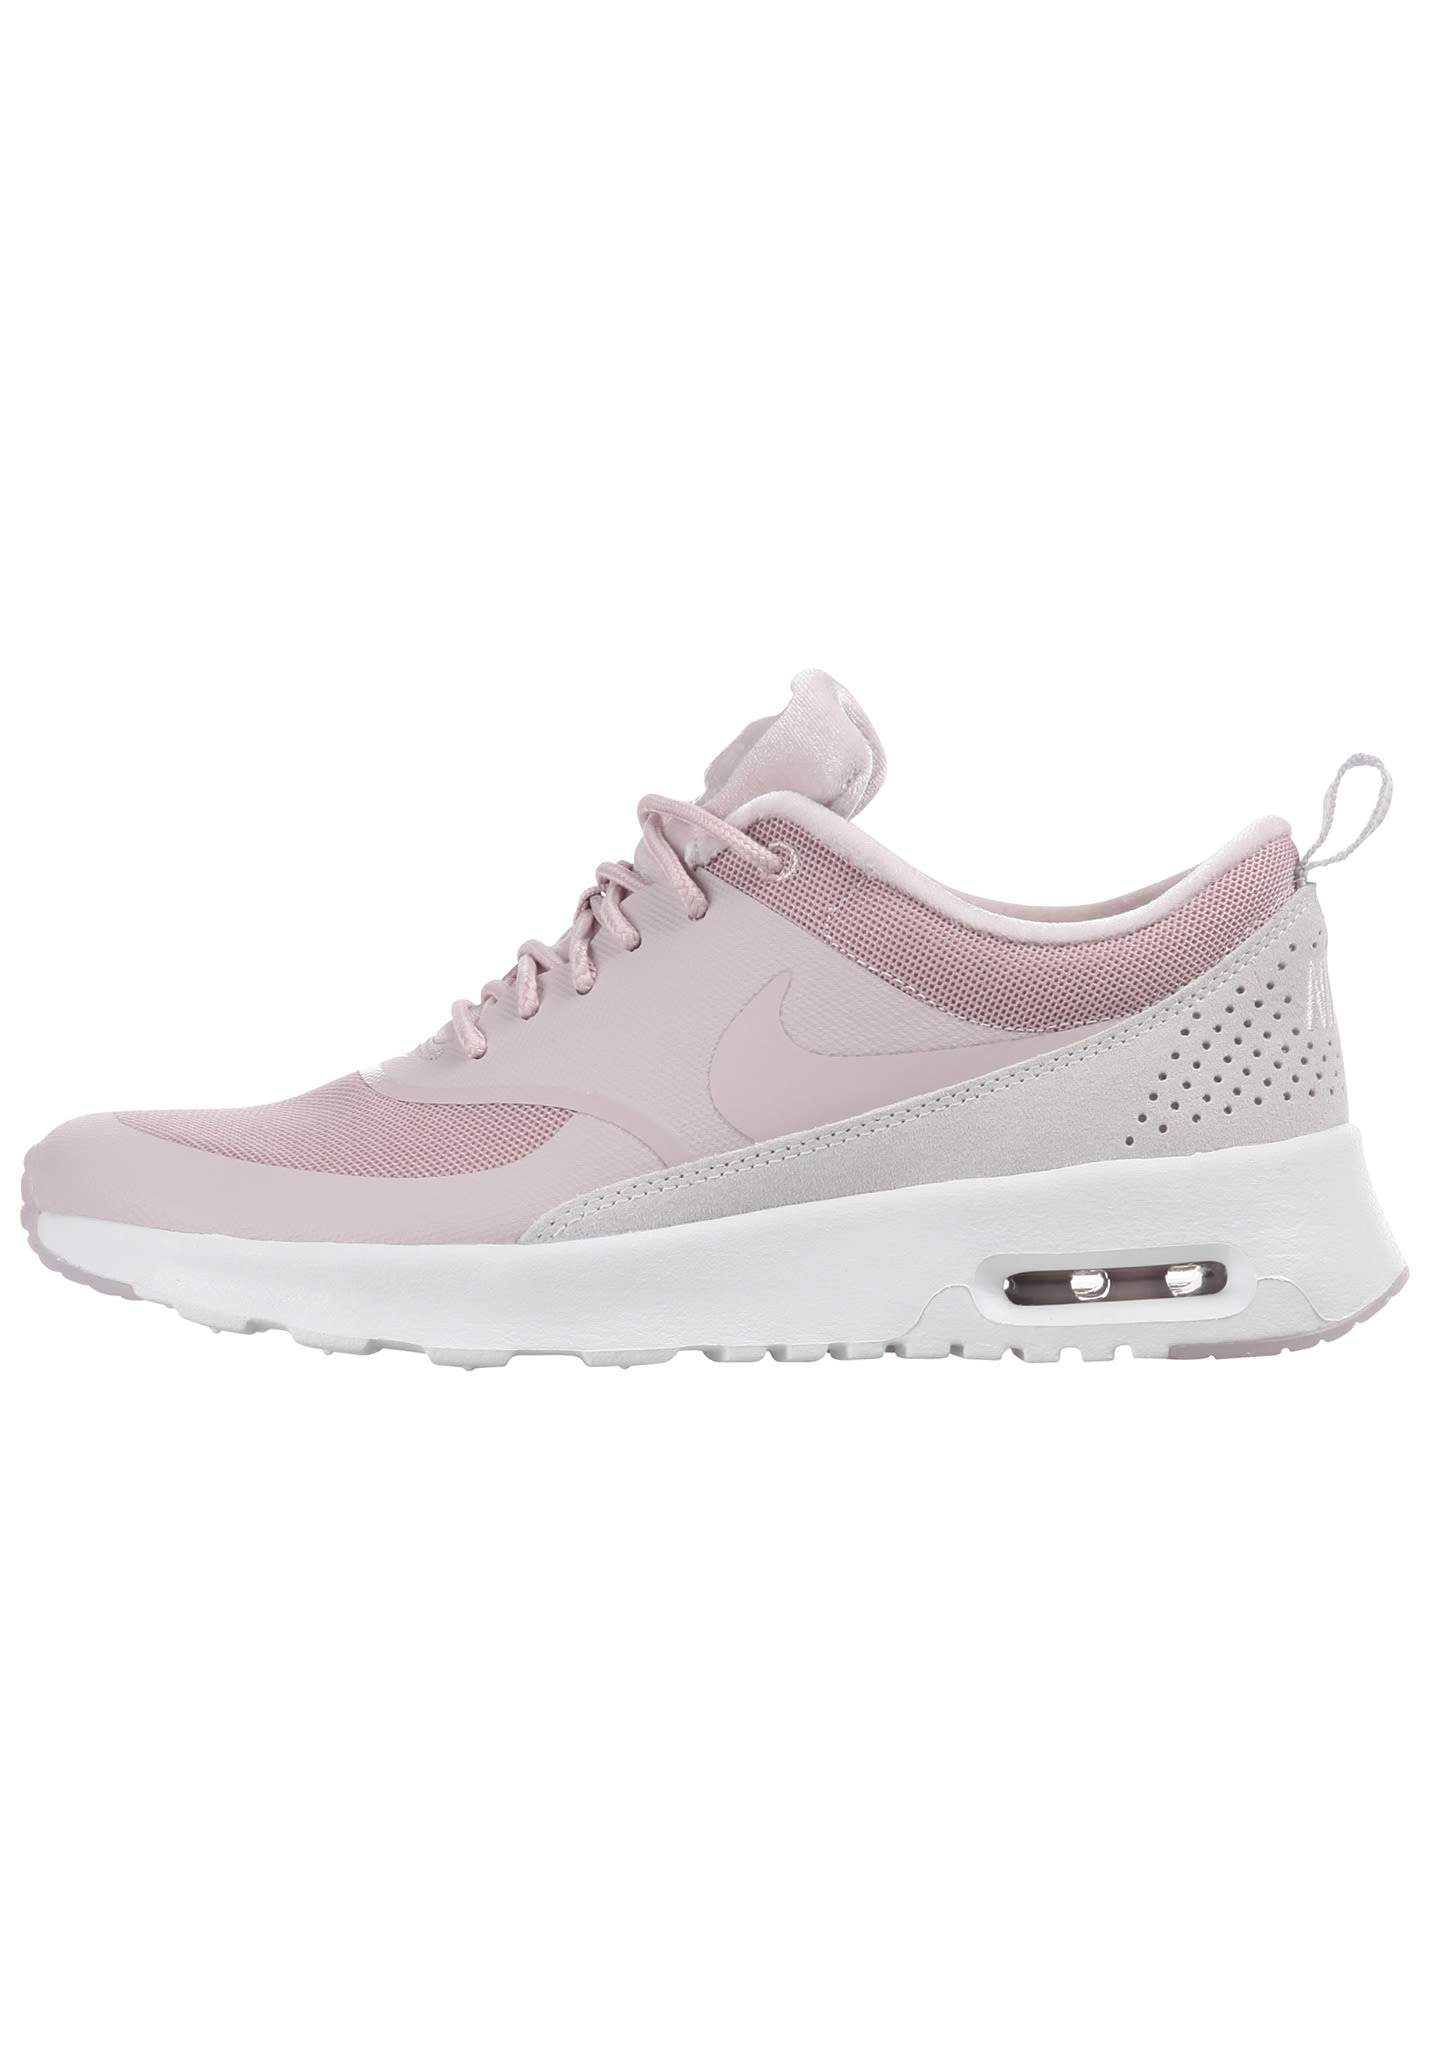 new product 3ebed 3bad5 NIKE SPORTSWEAR Air Max Thea LX - Sneaker für Damen - Pink - Planet Sports